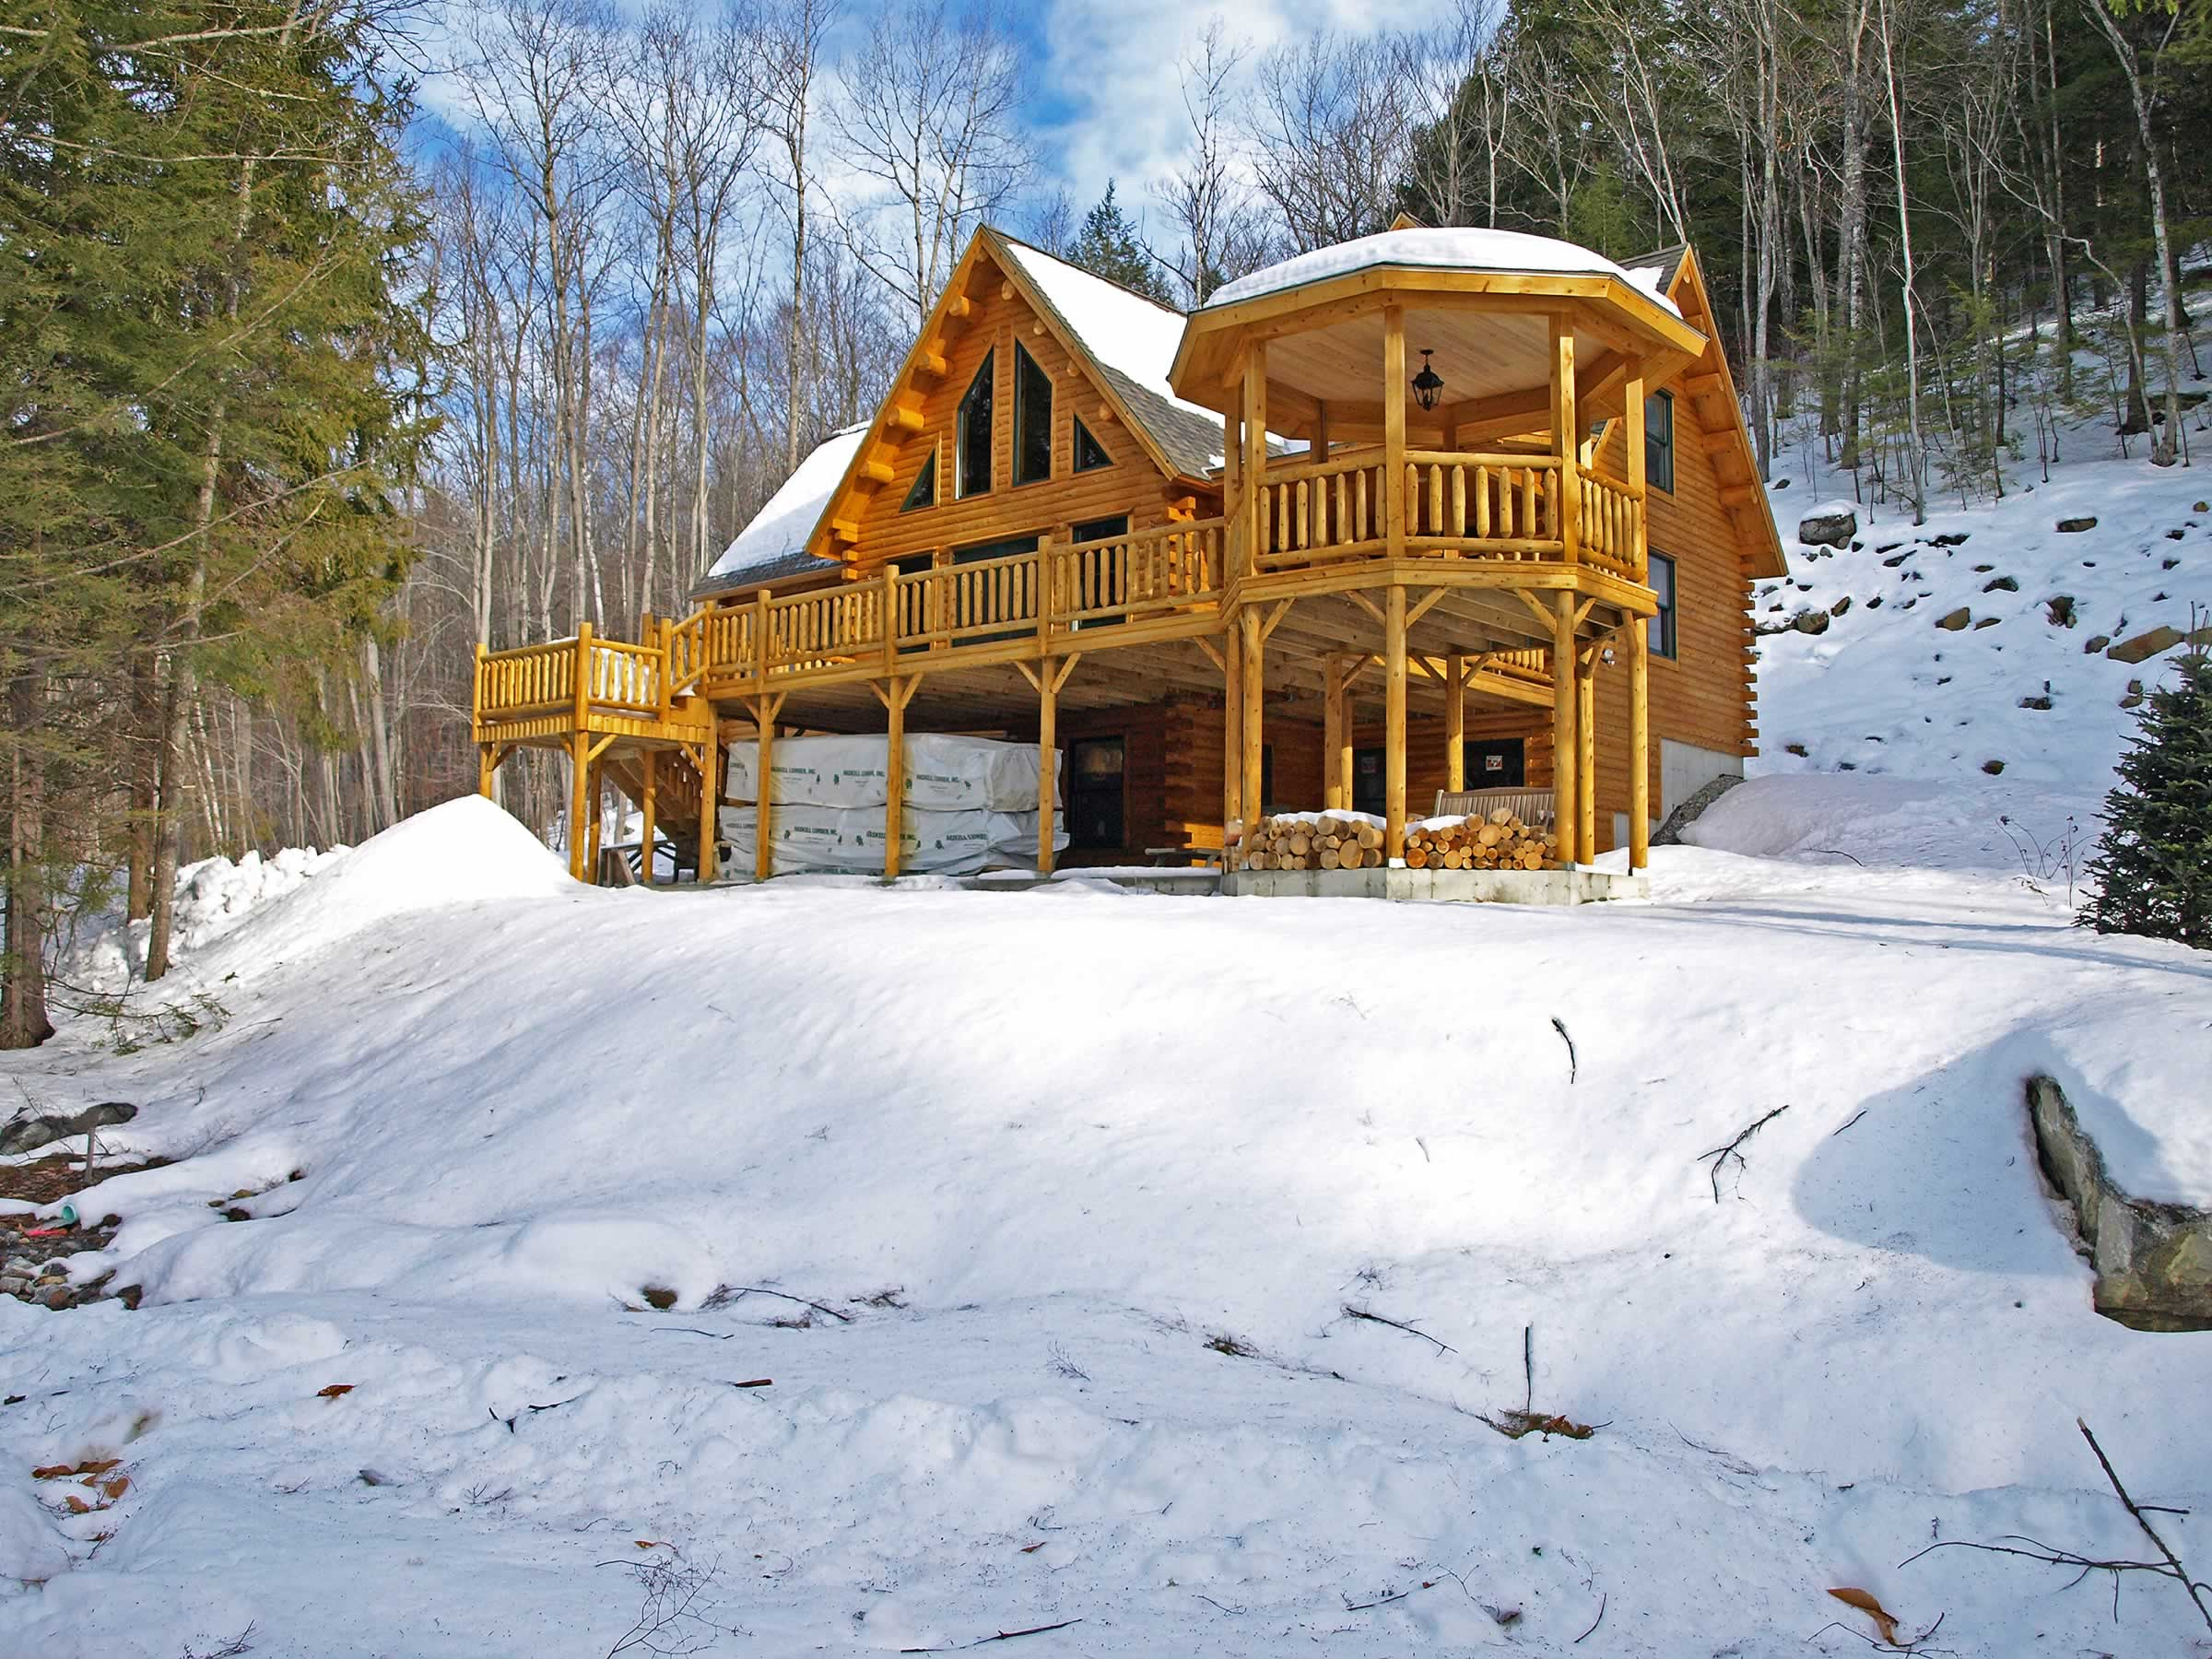 Plans For Building A New House Sebec - 07791 - Katahdin Cedar Log Homes